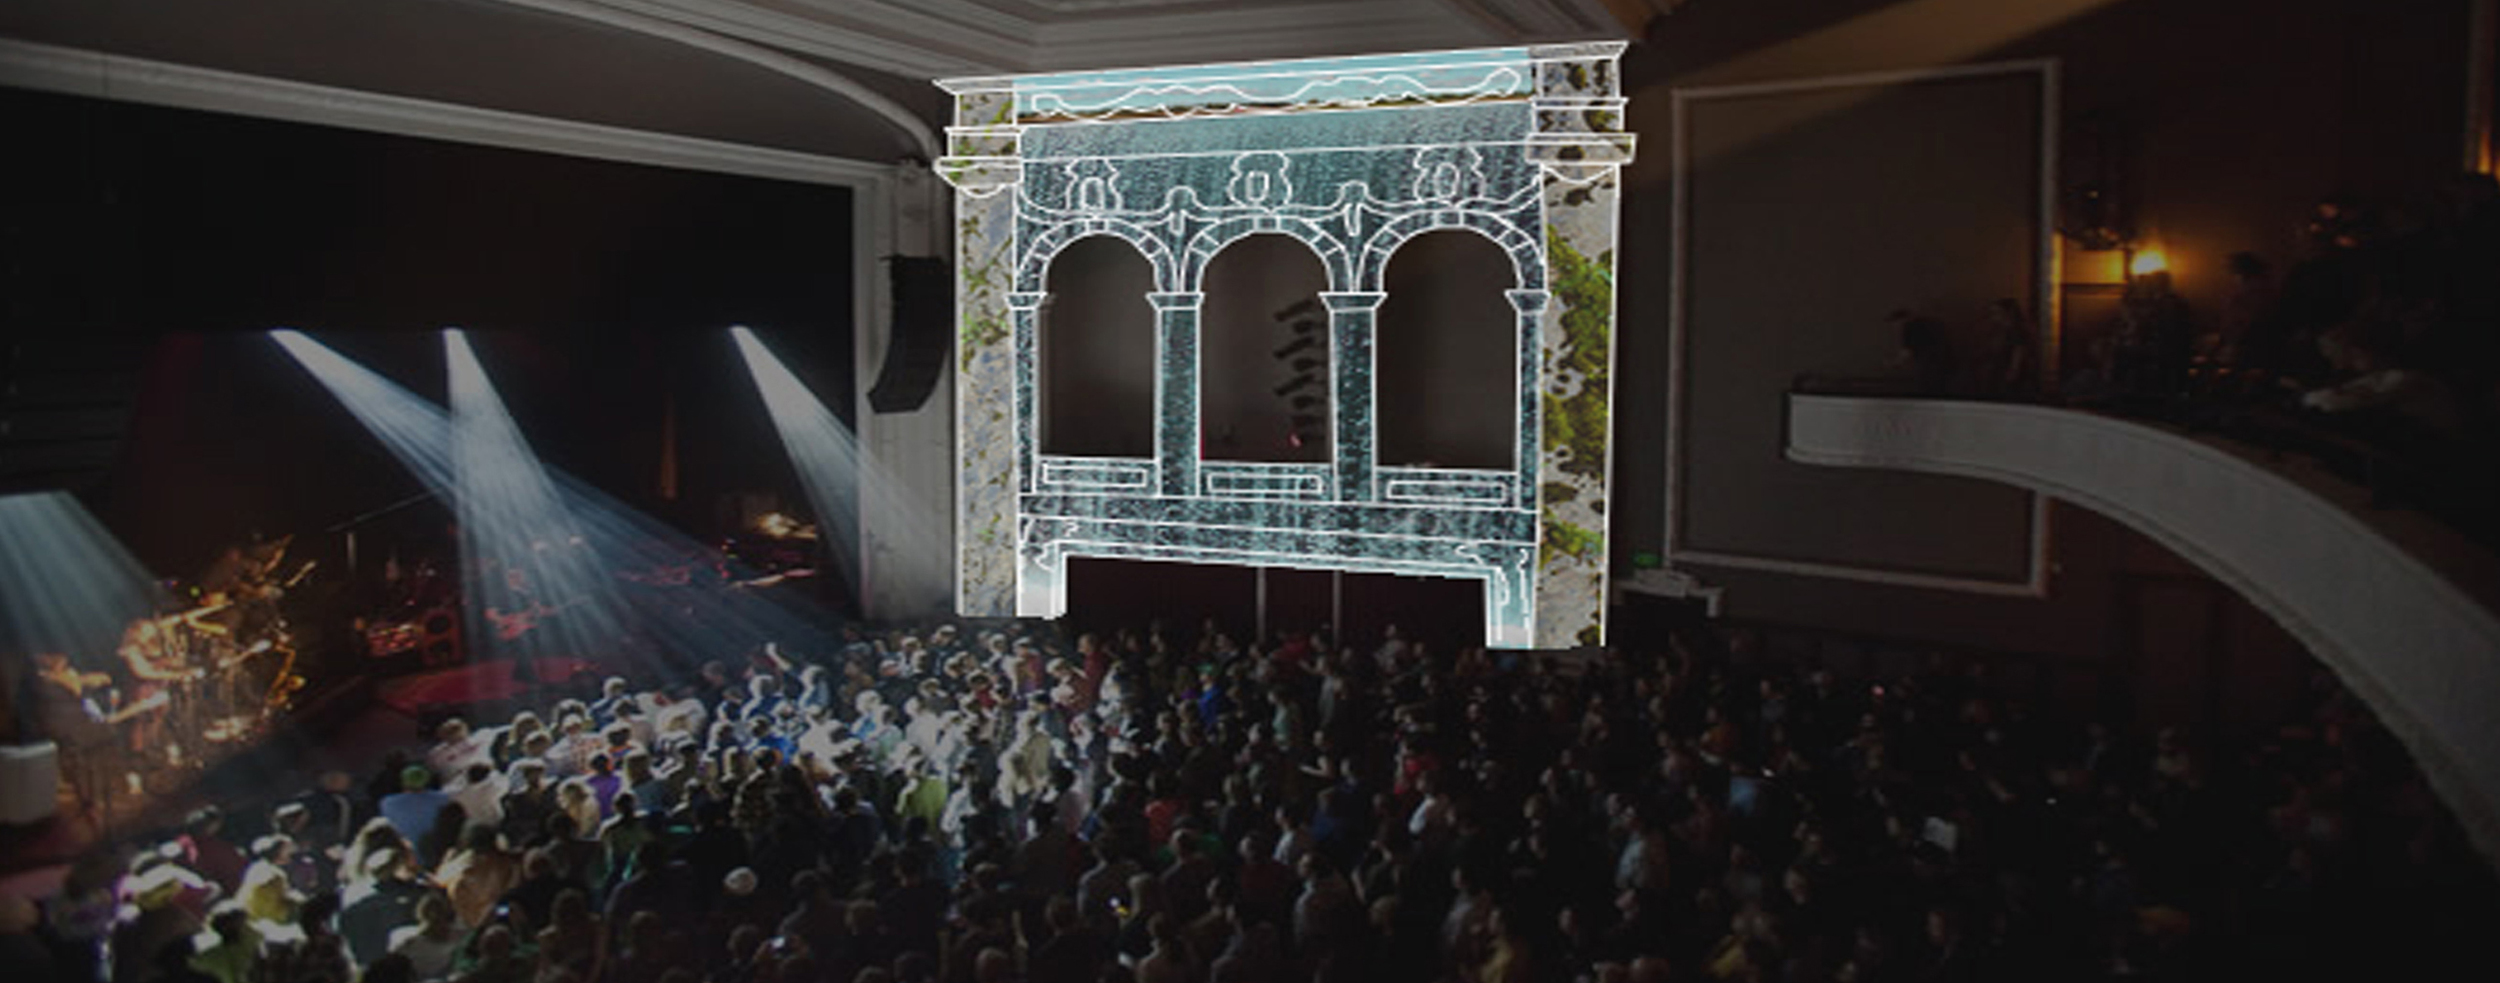 Portfolio . Virginia Film Festival . Rendering Projection Mapping